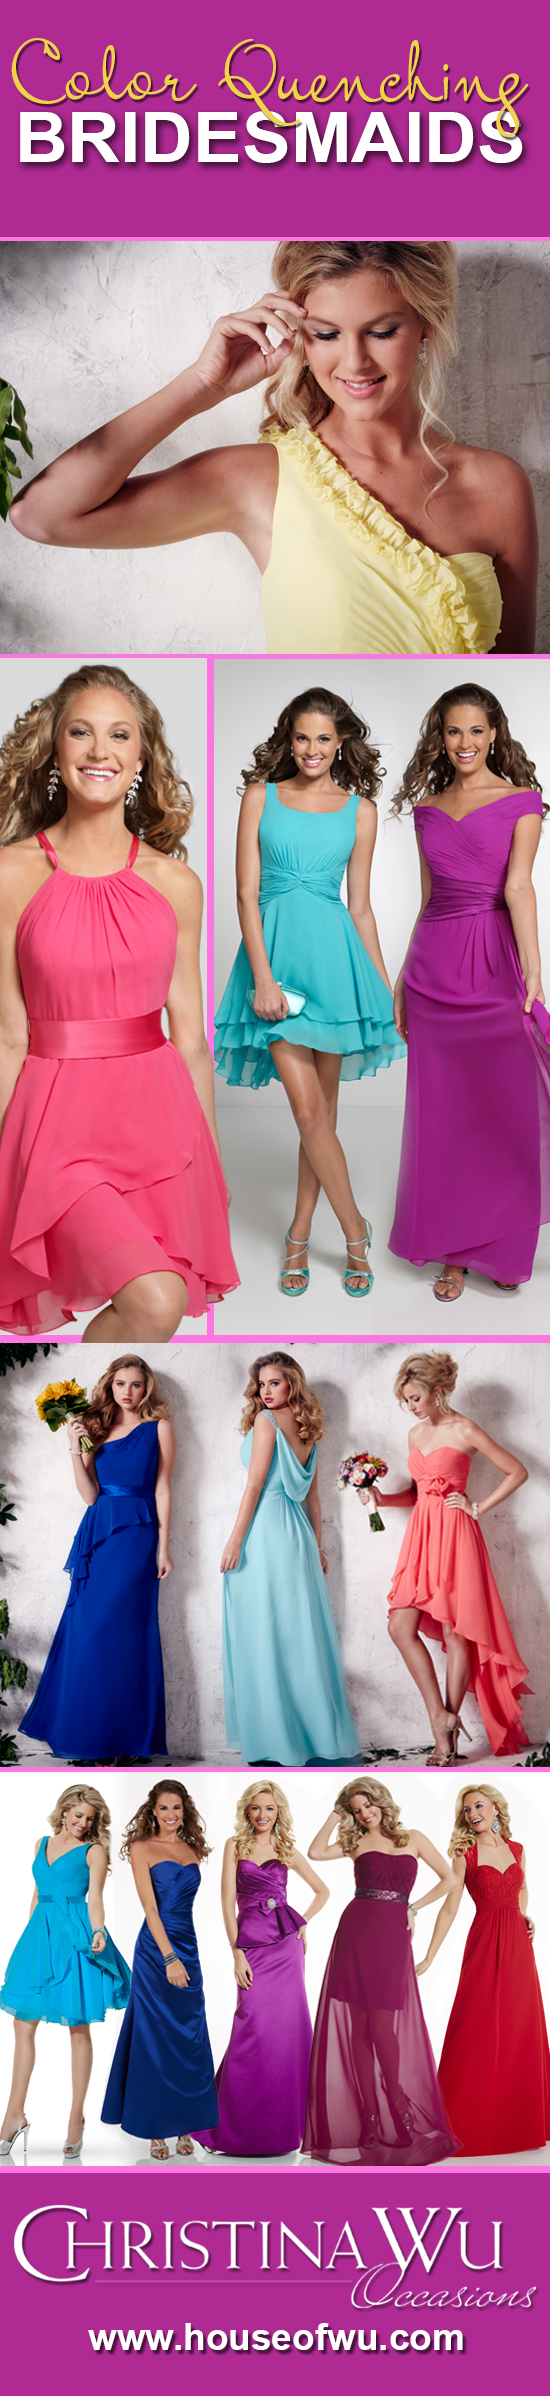 Drench your big day in bold and bright colors. #bridesmaids